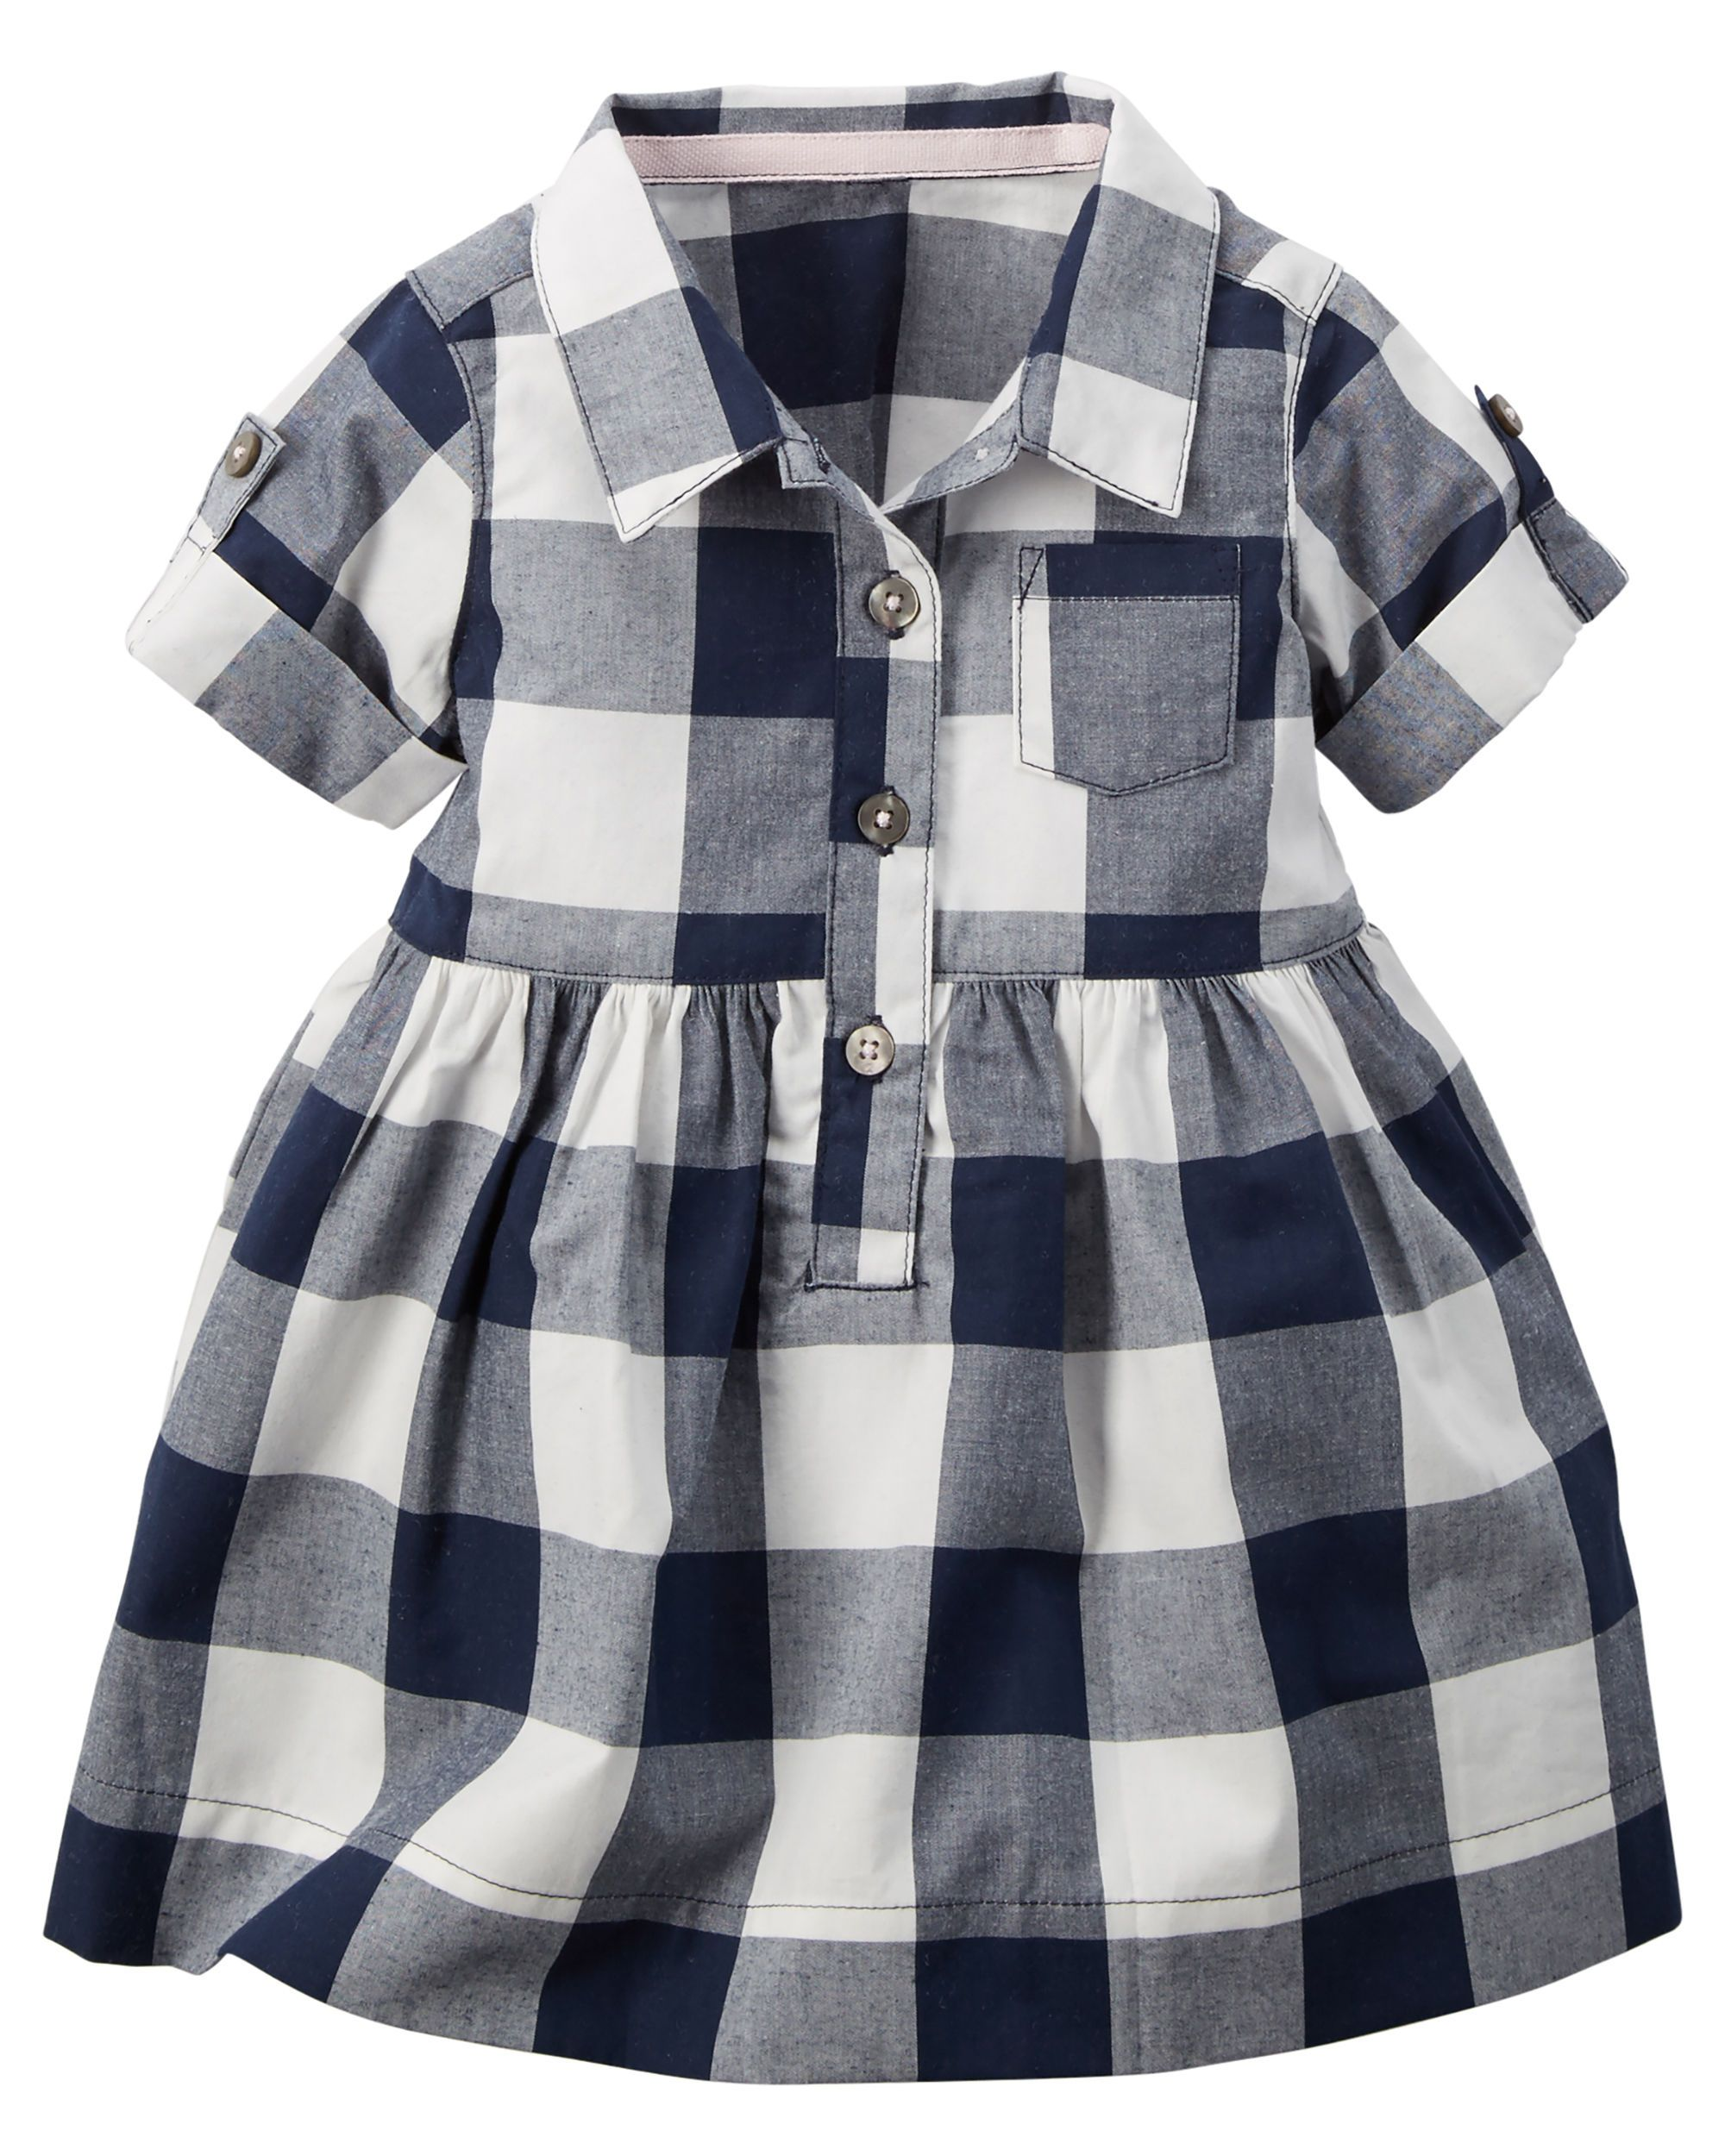 aff6676dbb3 ... baby girl fashion outfits featuring super lovely prints and hues.  Buffalo Check Shirt Dress